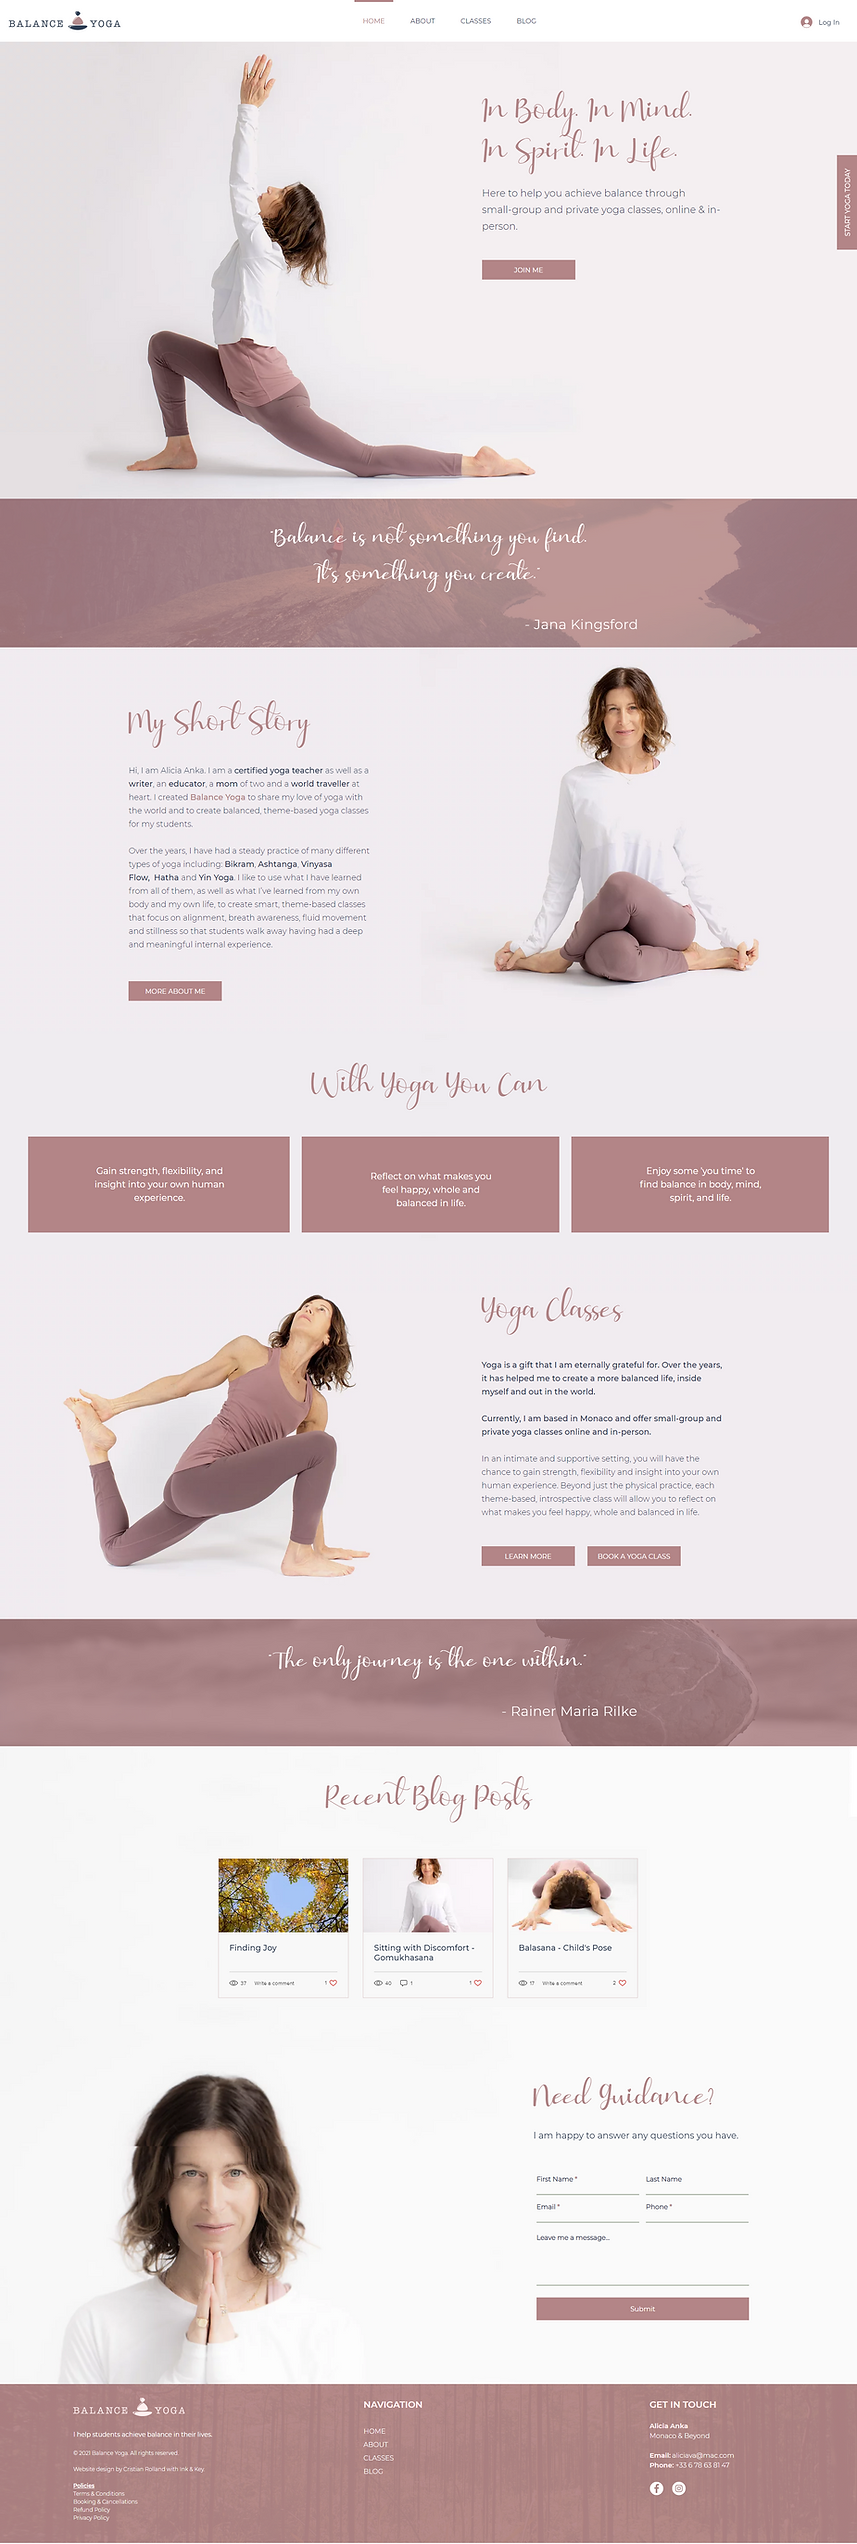 Balance Yoga Full Page View.png